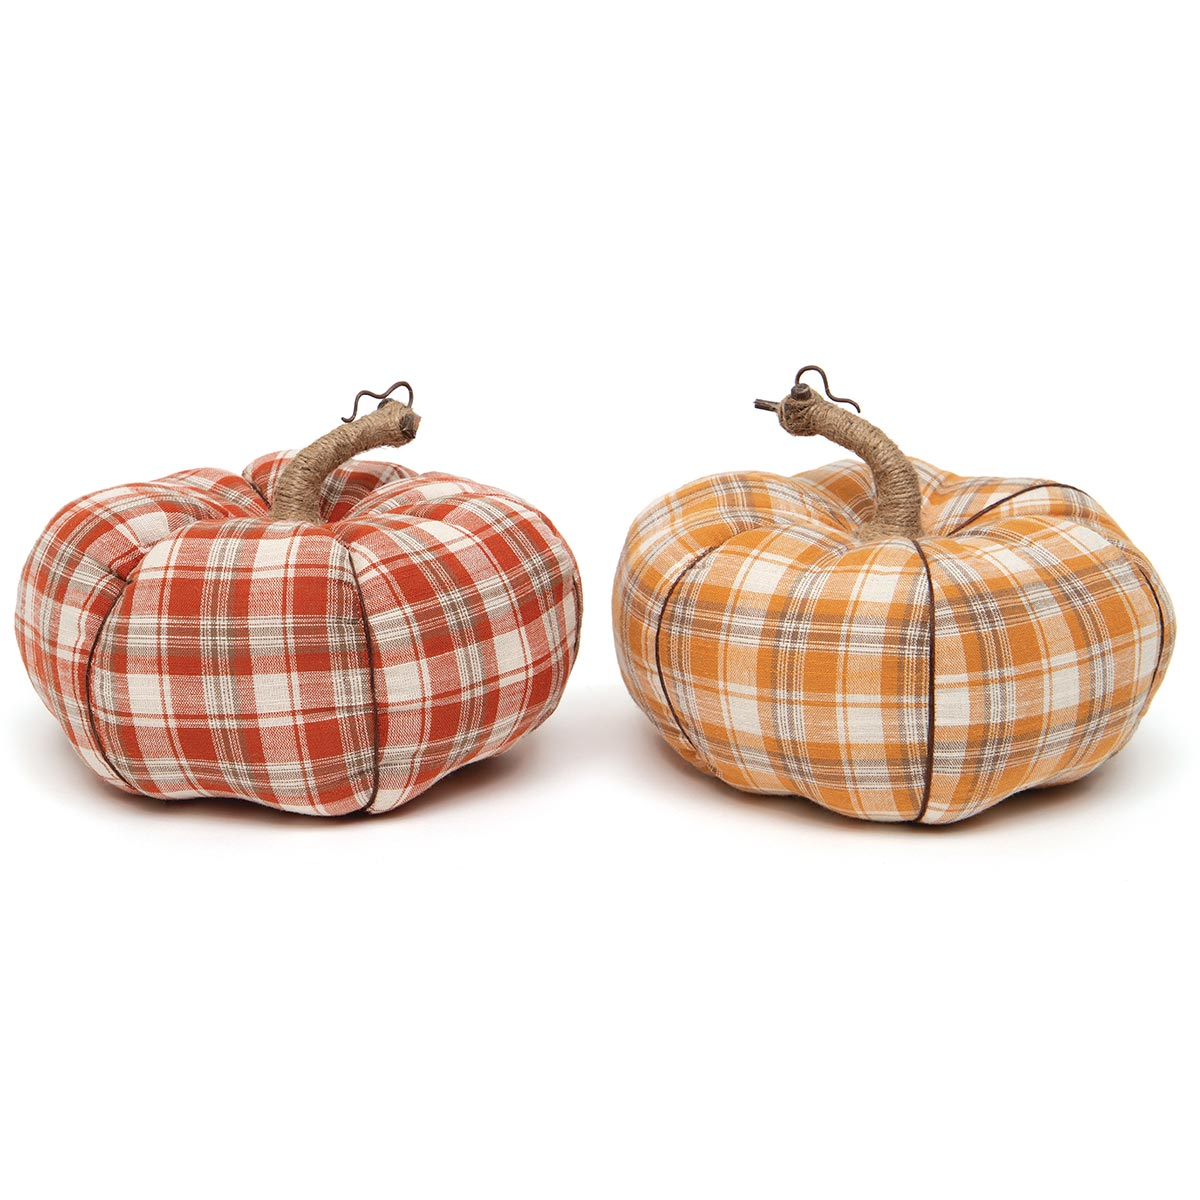 FALL FEST PLAID PLUSH PUMPKIN RED/ORANGE WITH TWINE